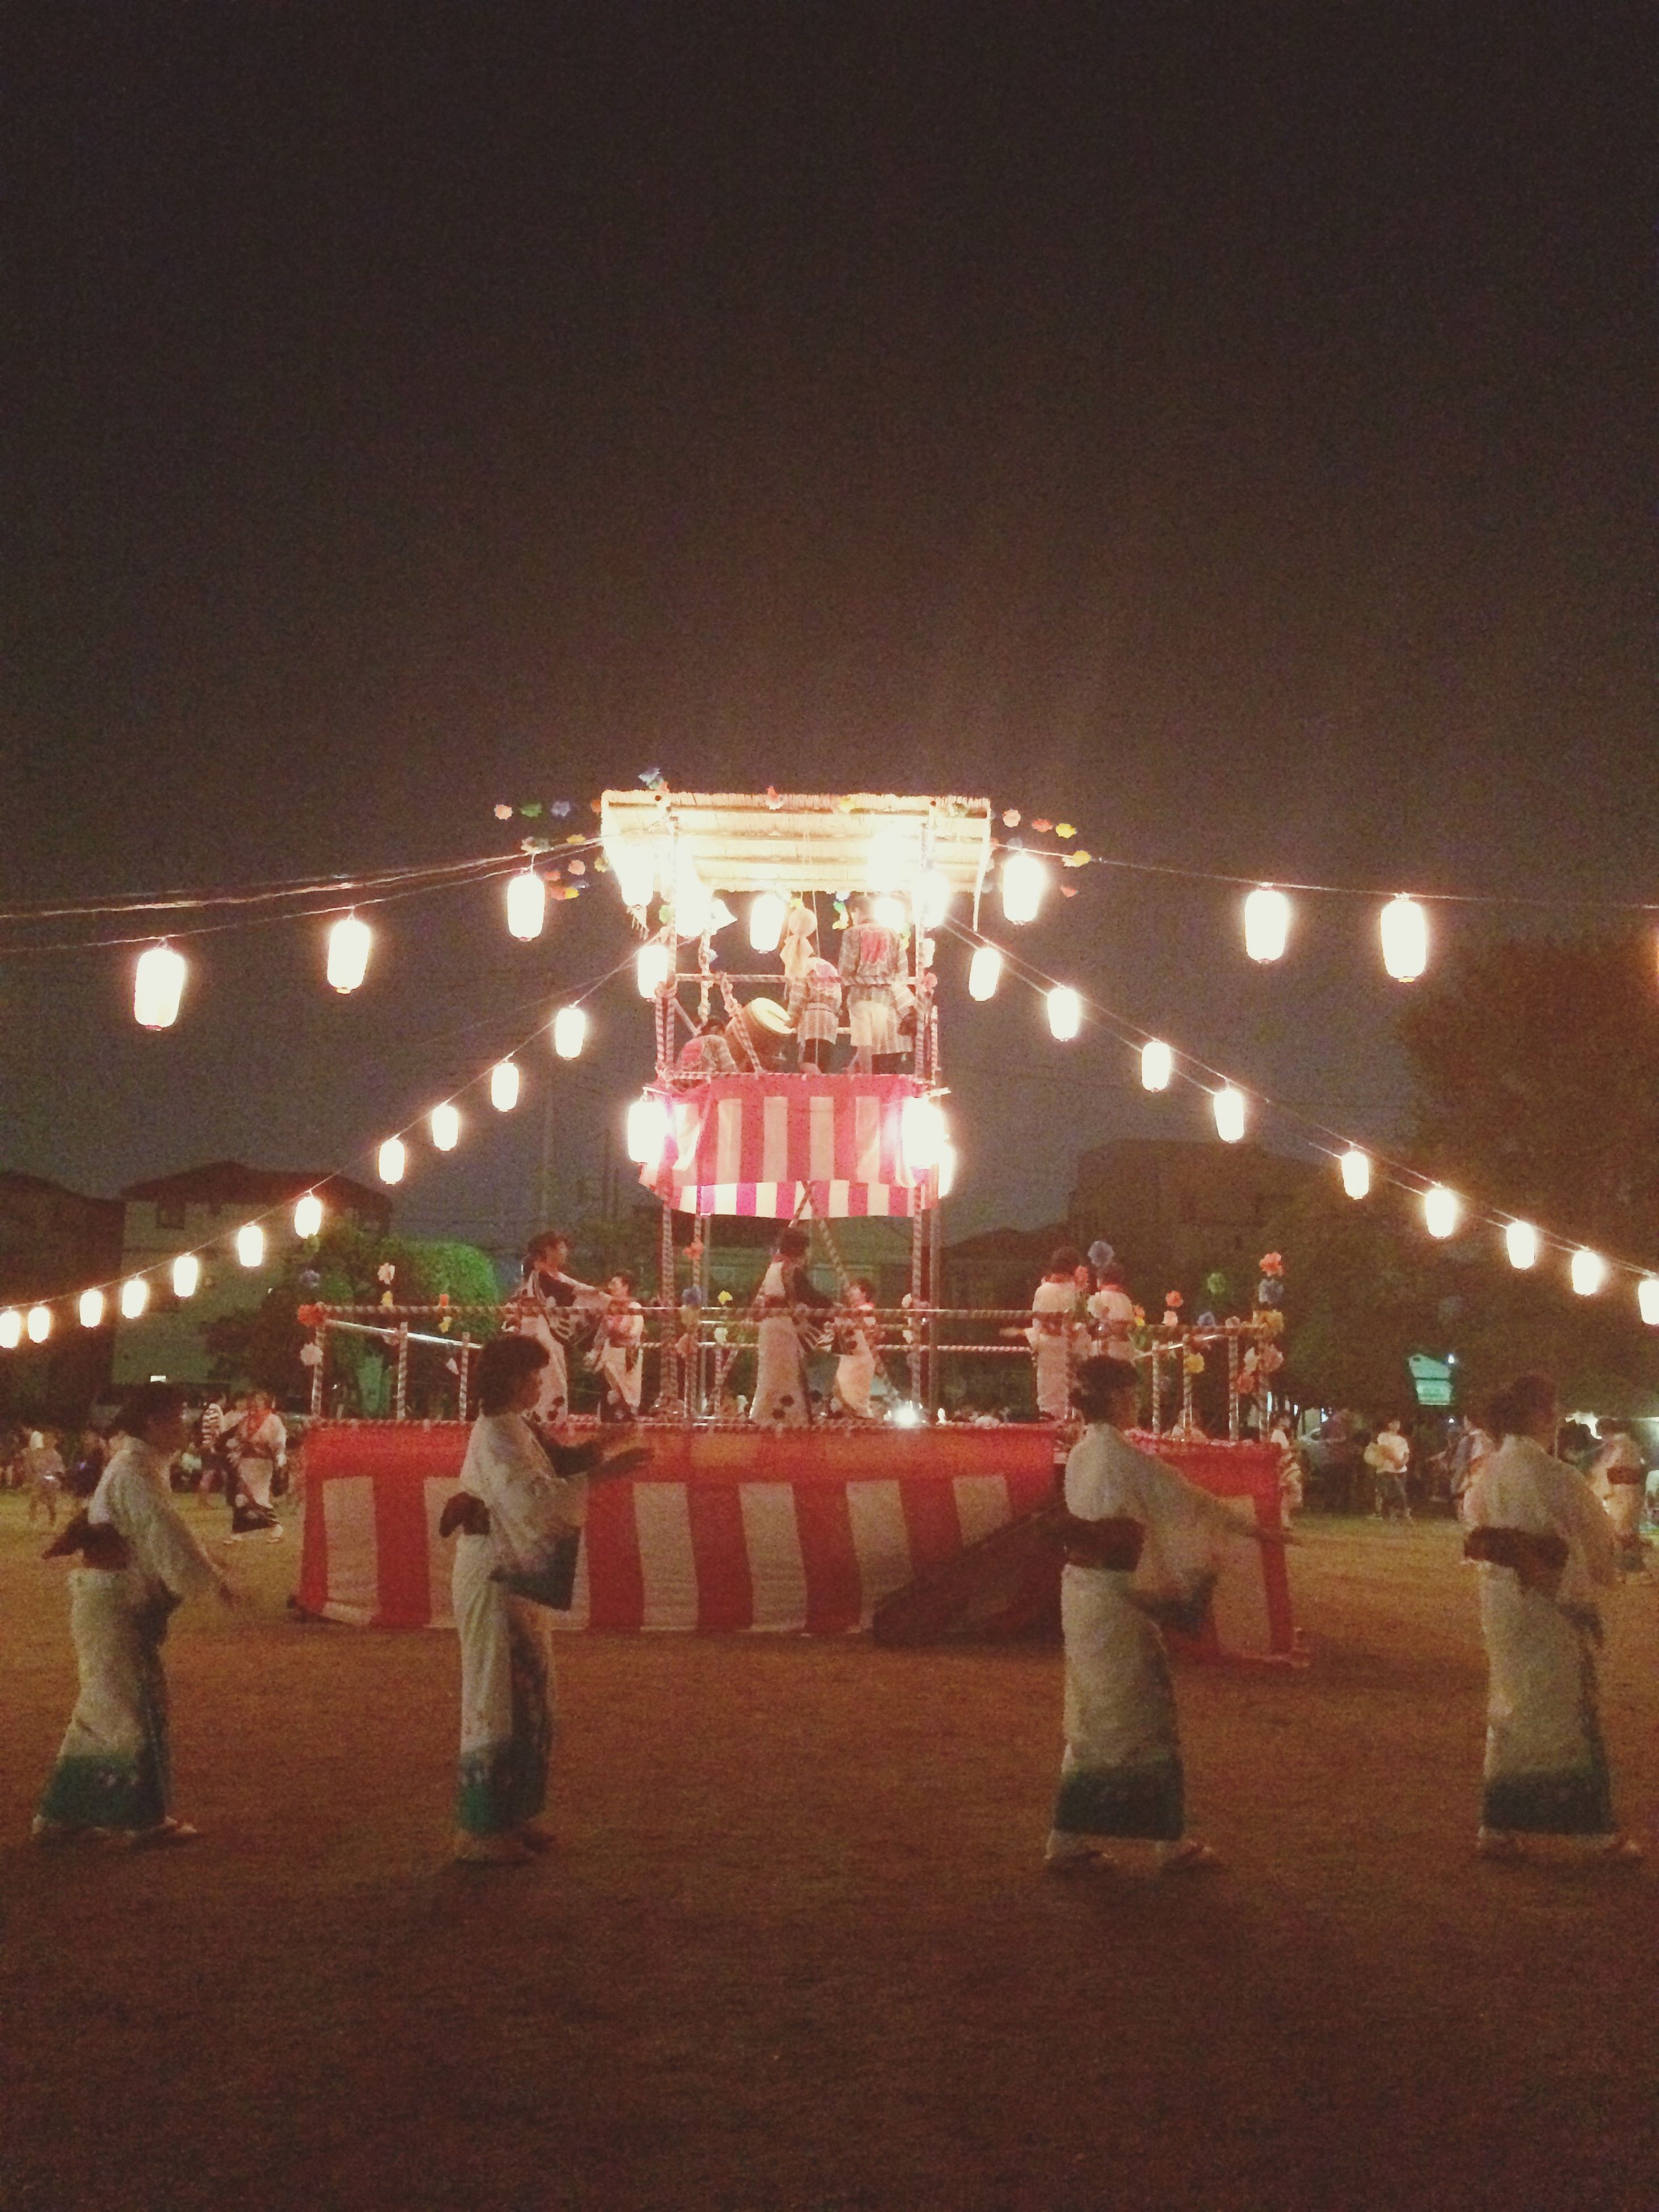 illuminated, lifestyles, night, leisure activity, large group of people, men, person, arts culture and entertainment, lighting equipment, celebration, enjoyment, fun, crowd, event, standing, mixed age range, rear view, performance, tradition